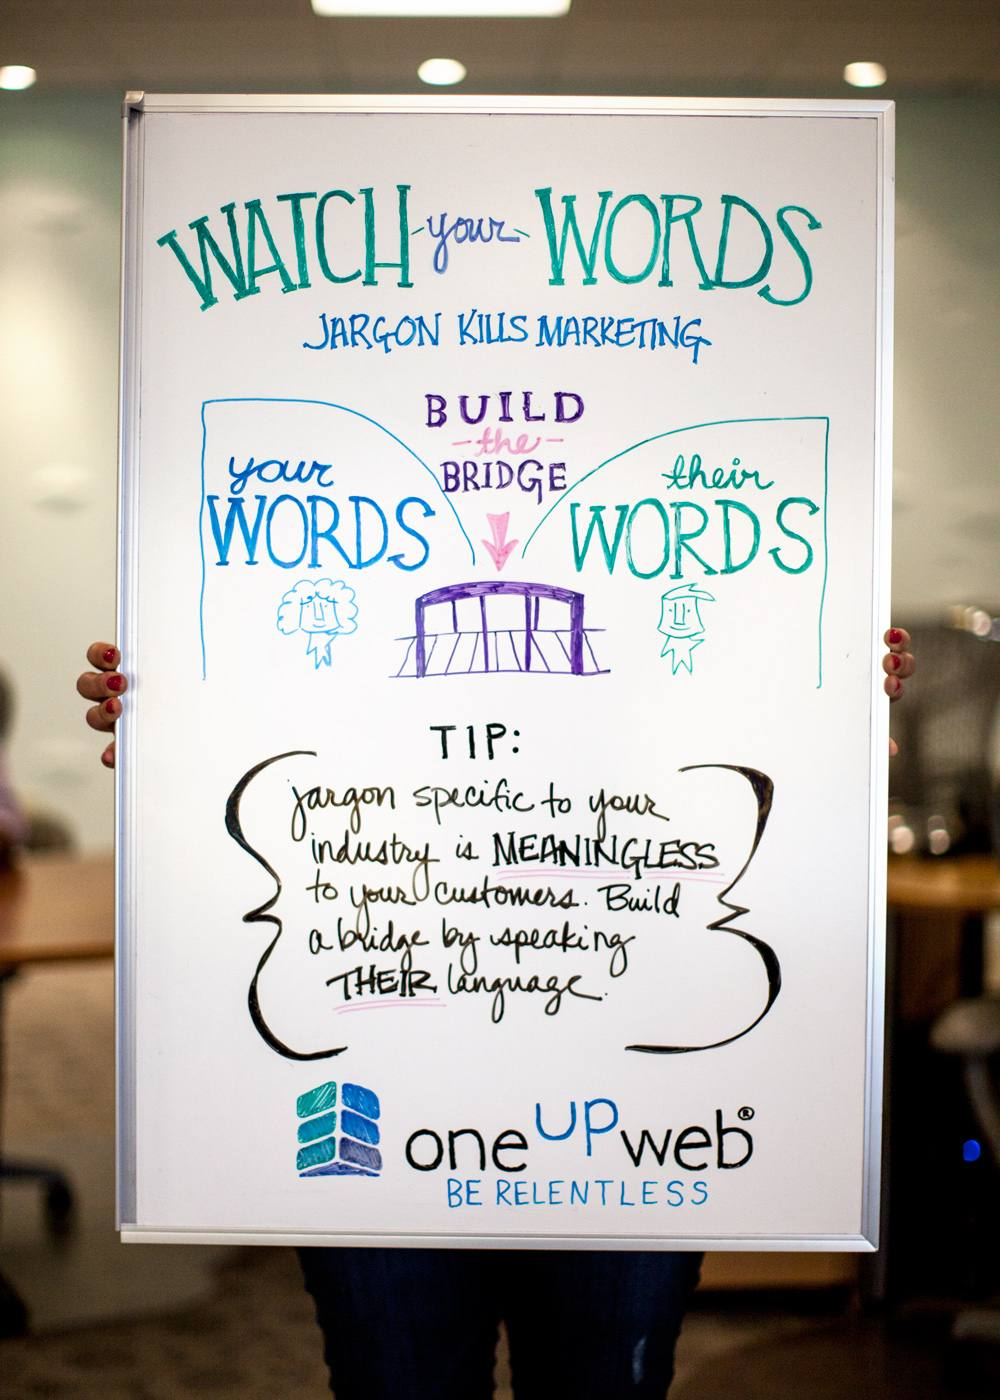 Tip of the Week: watch Your Words. Jargon specific to your industry is meaningless to your customers. Build the bridge by speaking their language